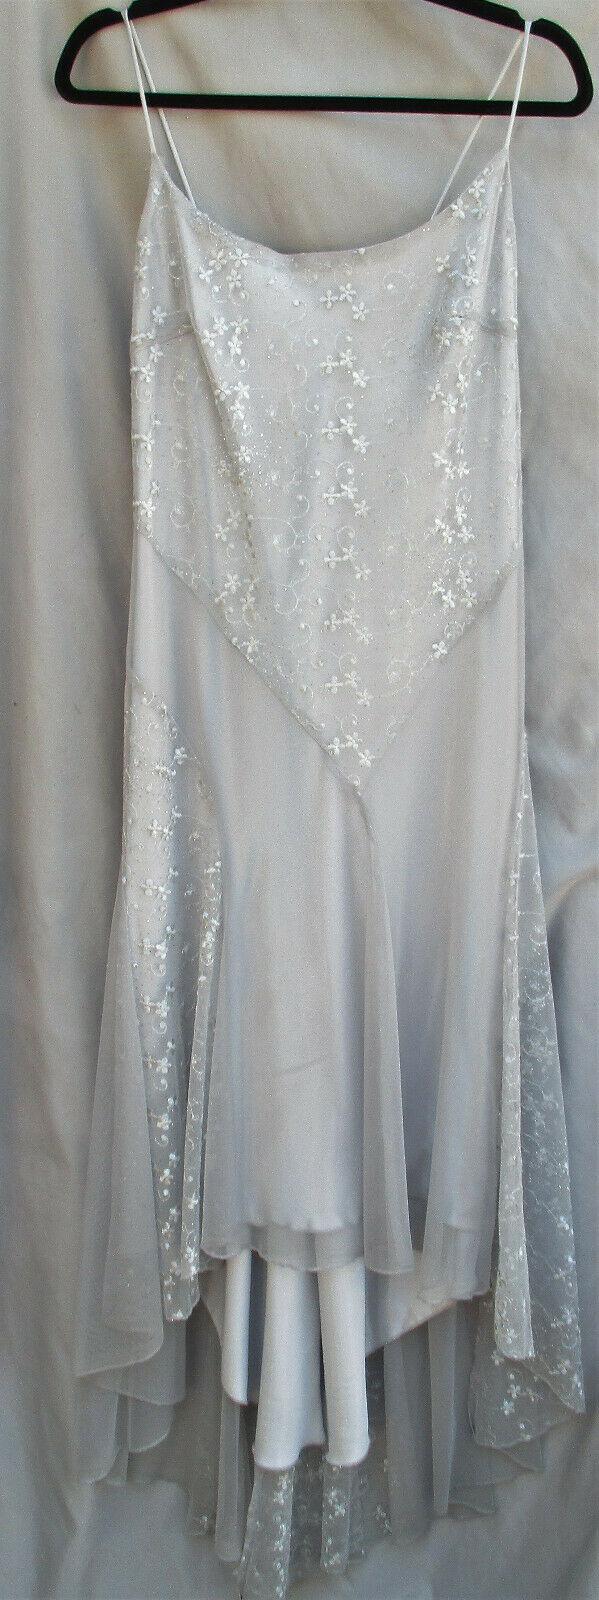 Vintage Look Silver Gray Shimmer Embroidered Evening Gown Size XXL